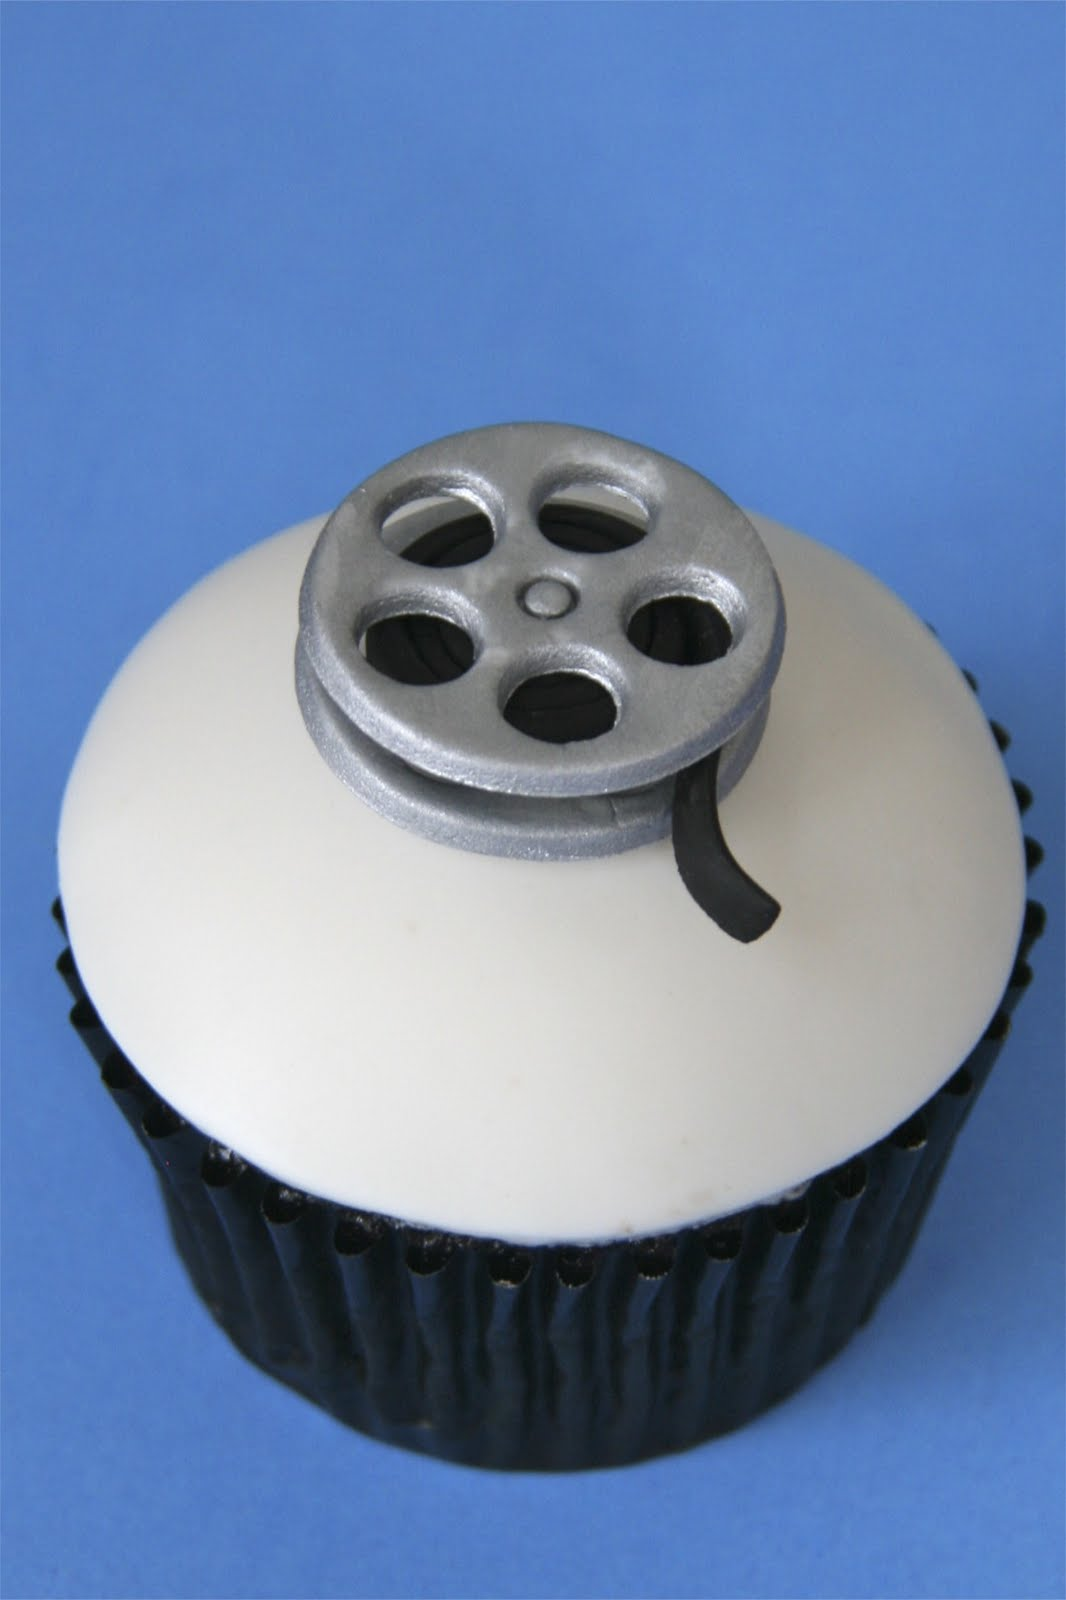 Sweet Cake Design Movie Theatre Cupcakes